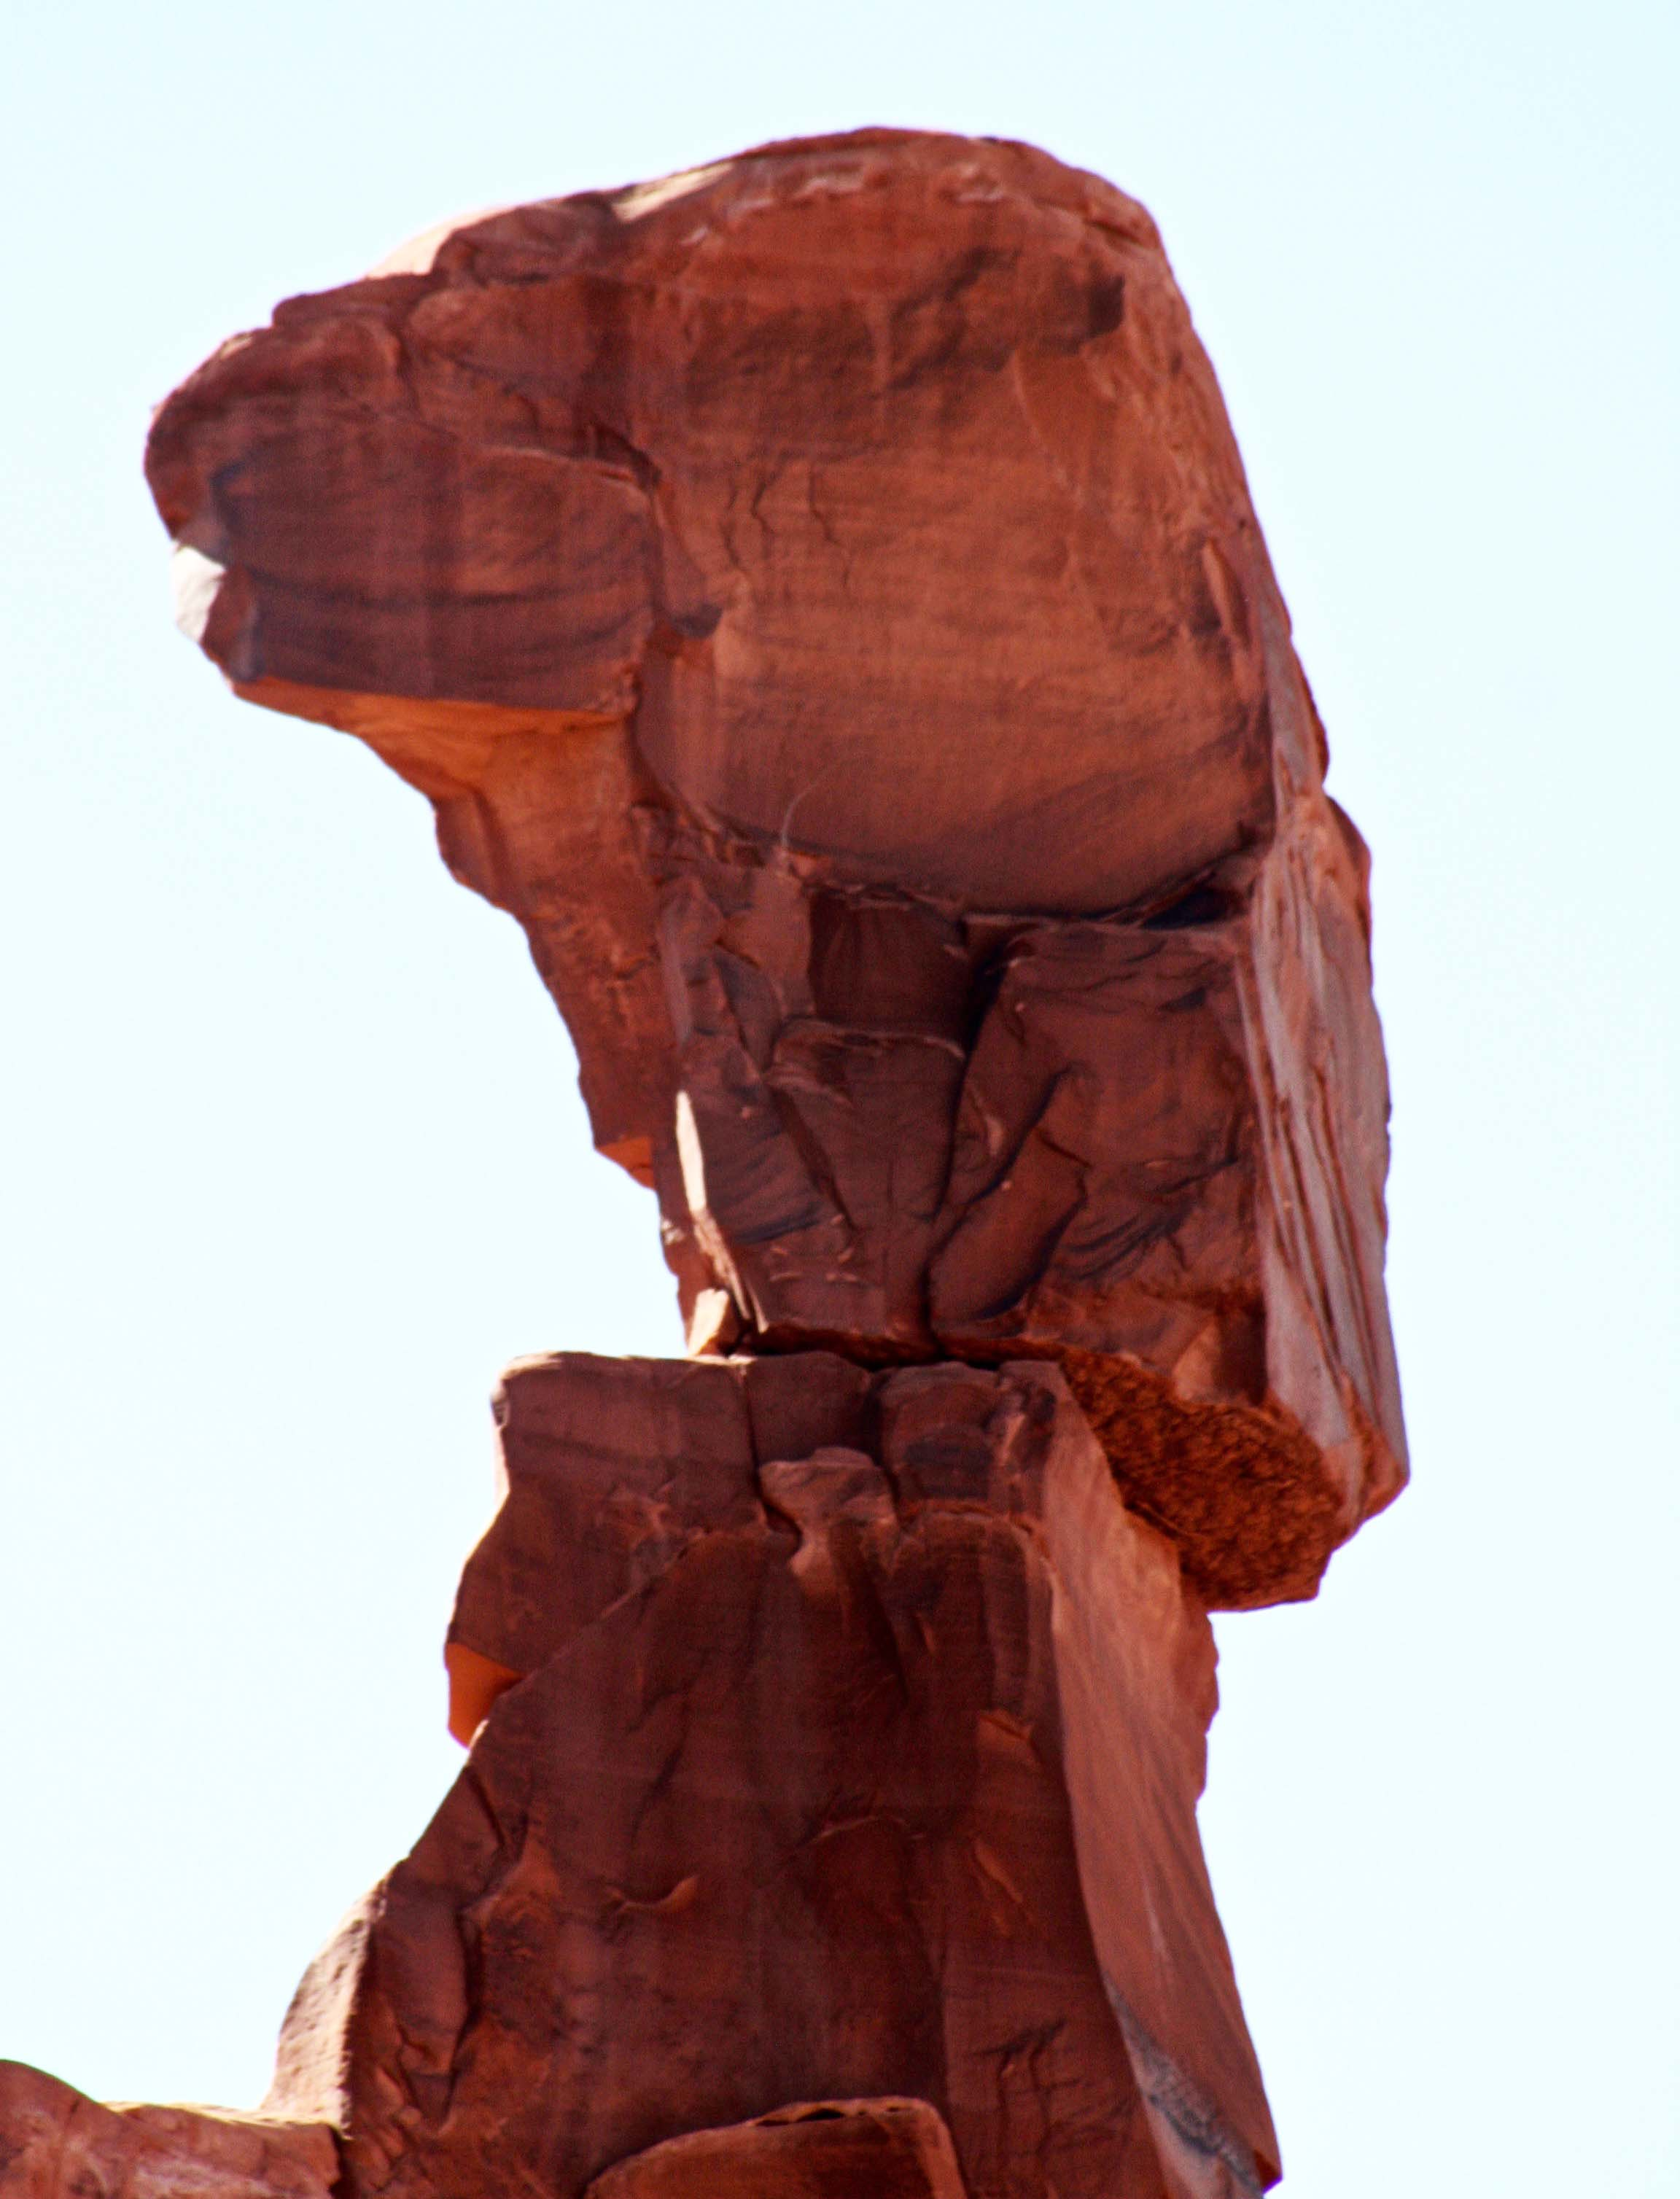 Sliding off pedestal, Arches, NP